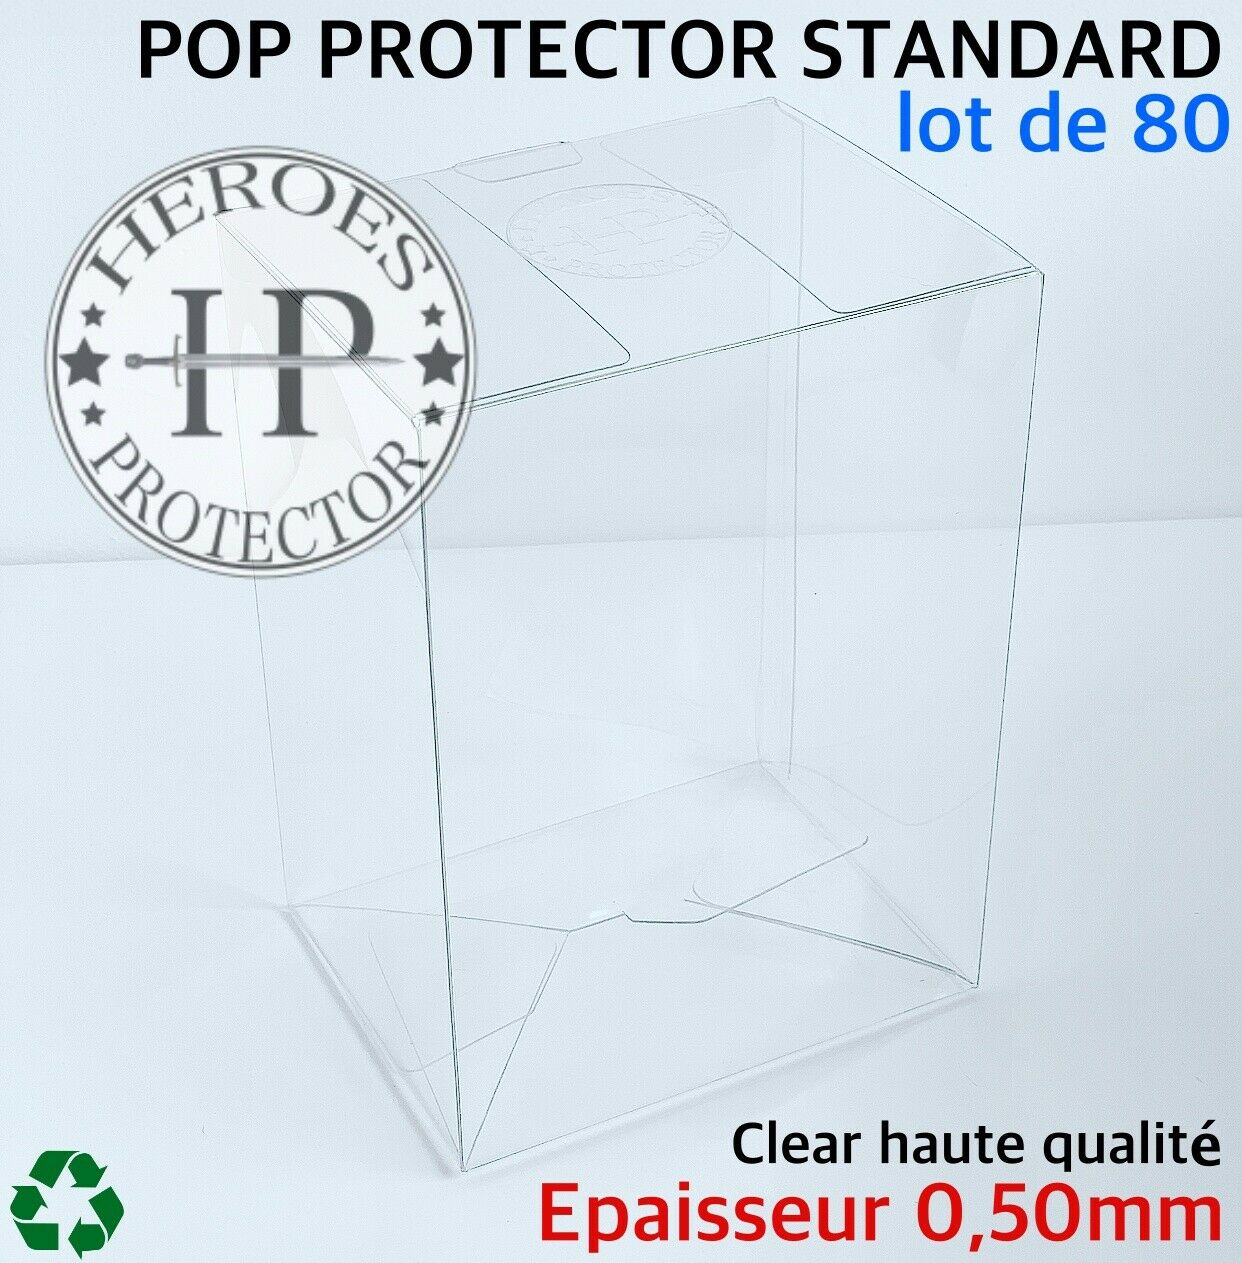 LOT DE 80 HEROES ProssoECTOR 0,50mm 0,50mm 0,50mm divertimentoko Pop Vinyl 4    Prossoection Vinyl scatola Case 257ba8